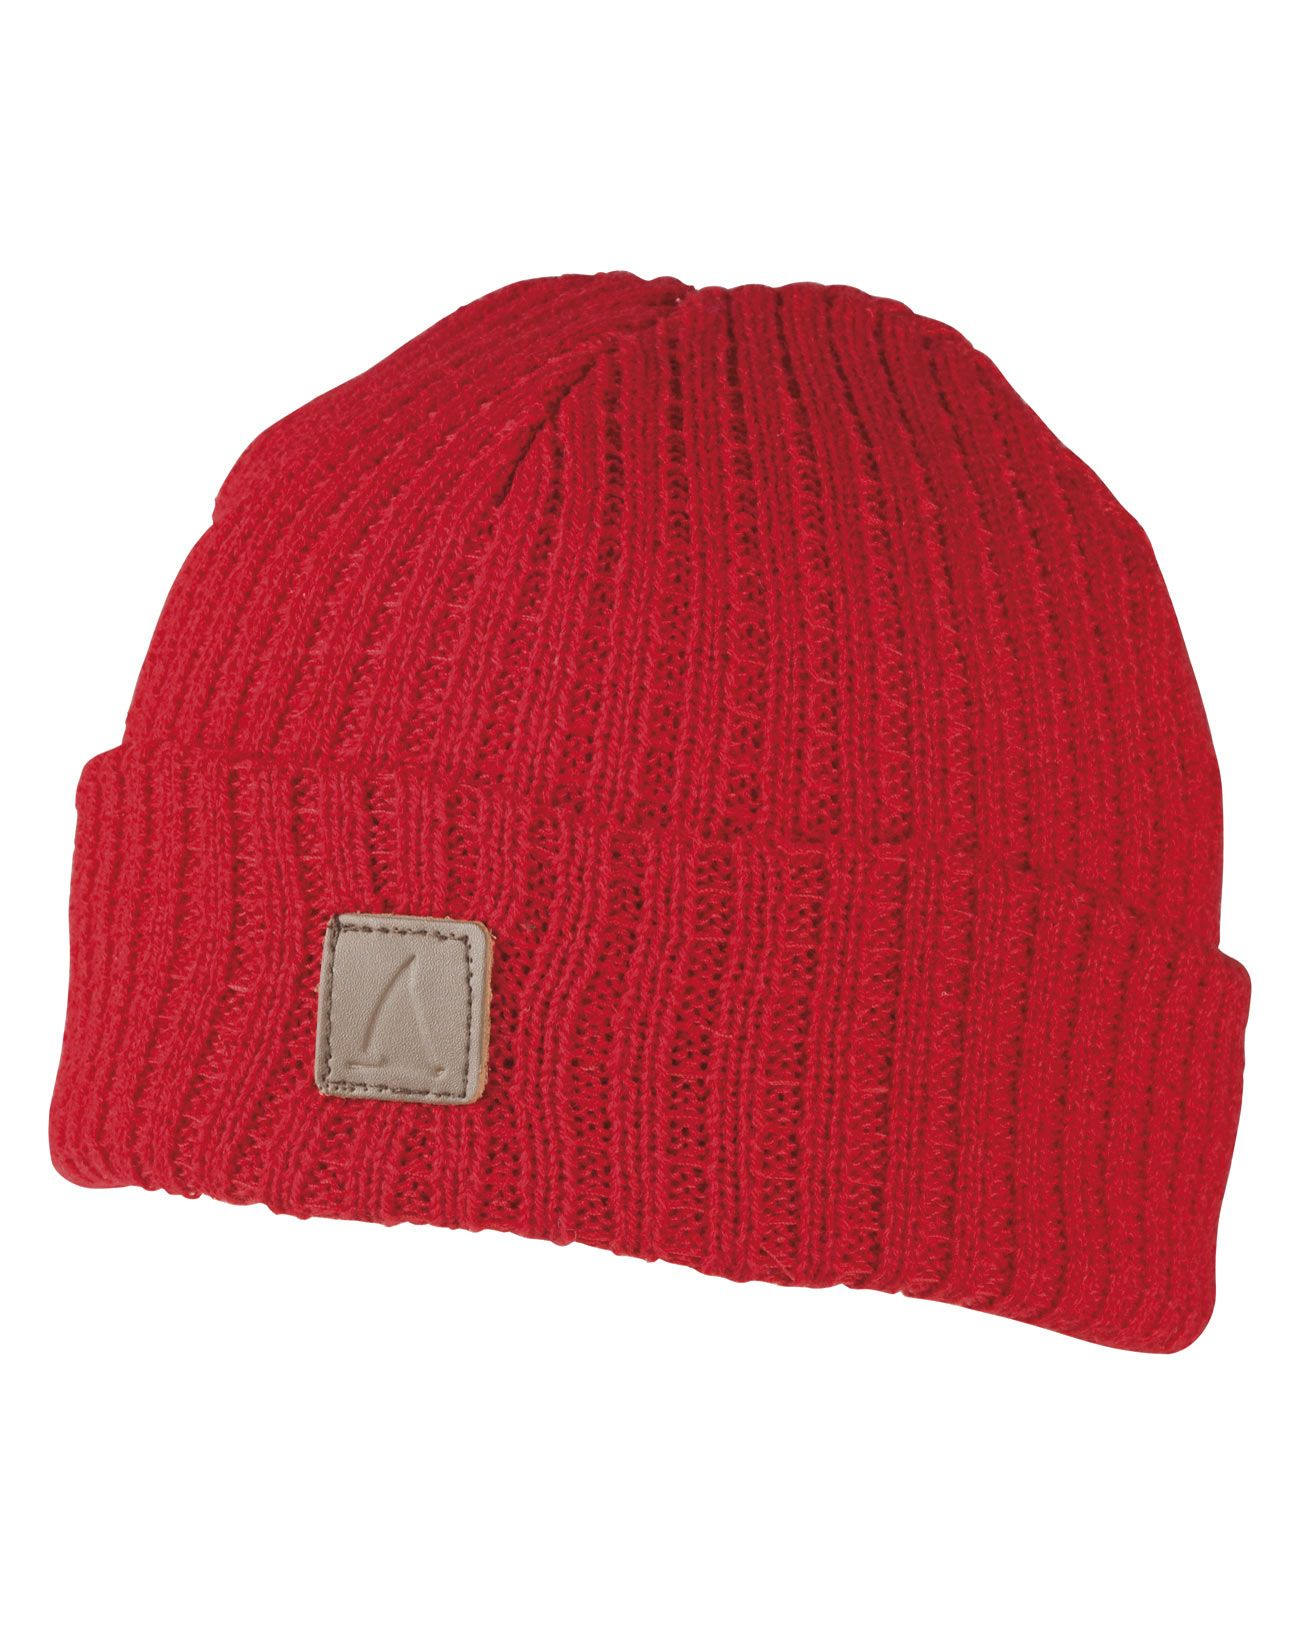 bc6467f808e6a Channel Jacques Cousteau and Steve Zissou with MUSTO s classic red sailing  beanie